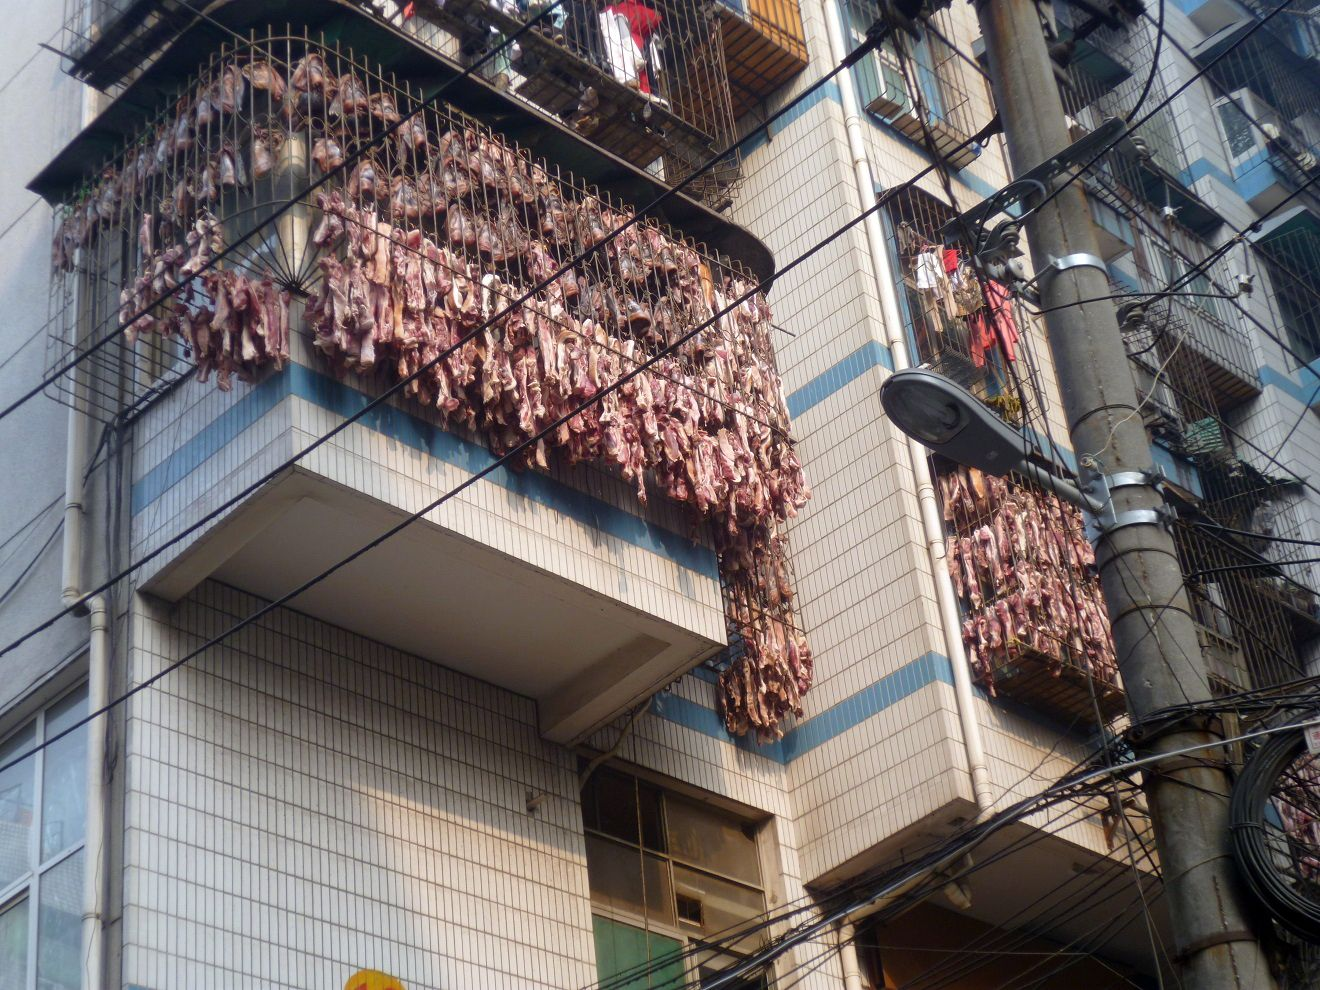 Bacon hangs to dry from a third-floor apartment window in Wuhan, China, Jan. 9, 2014.